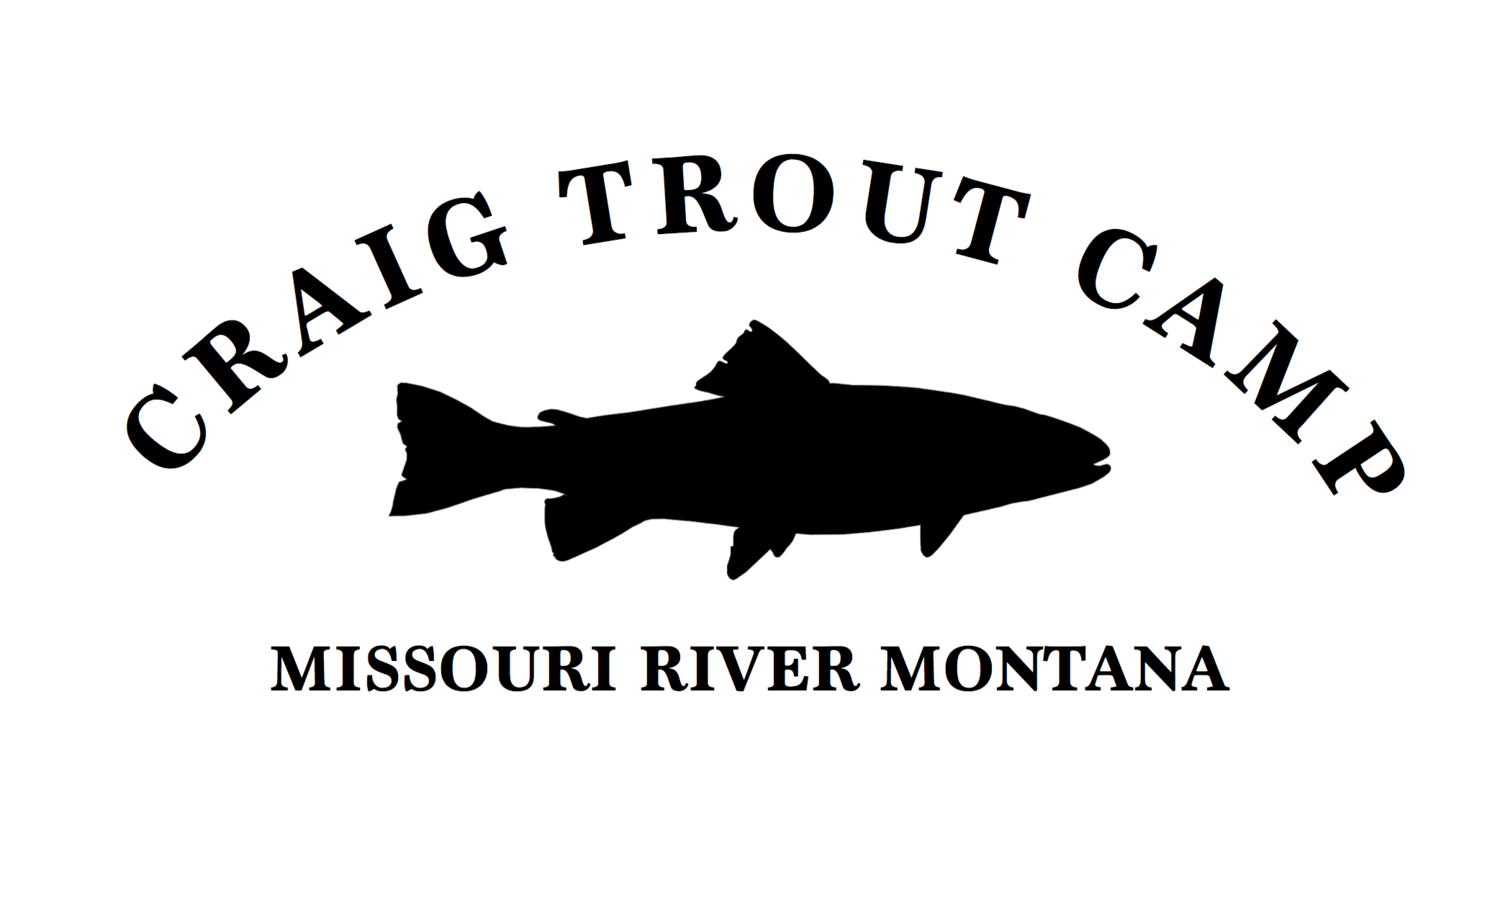 Craig Trout Camp